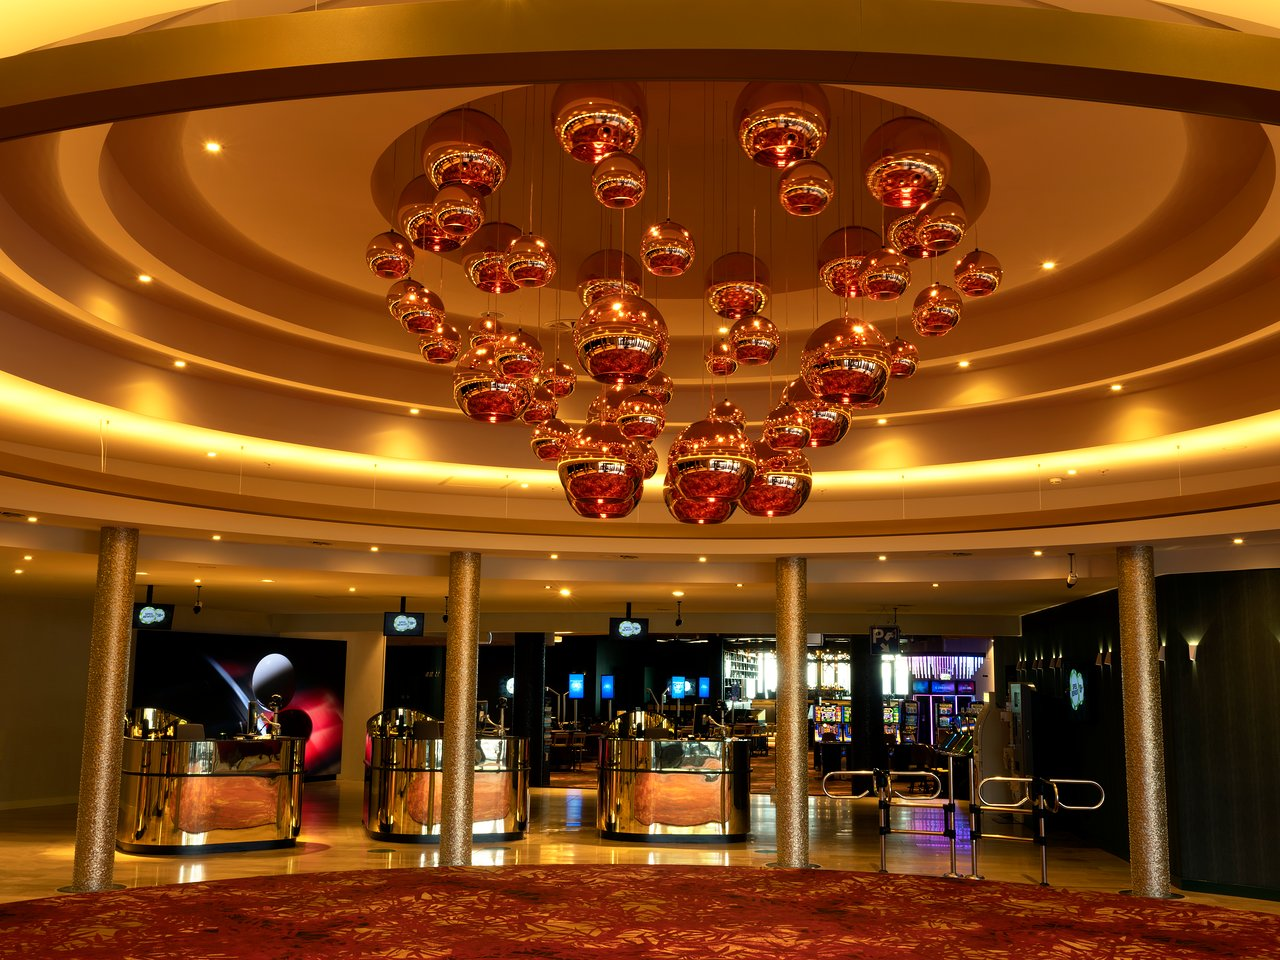 Holland Casino Valkenburg - 2020 All You Need to Know BEFORE You Go (with Photos) - Tripadvisor